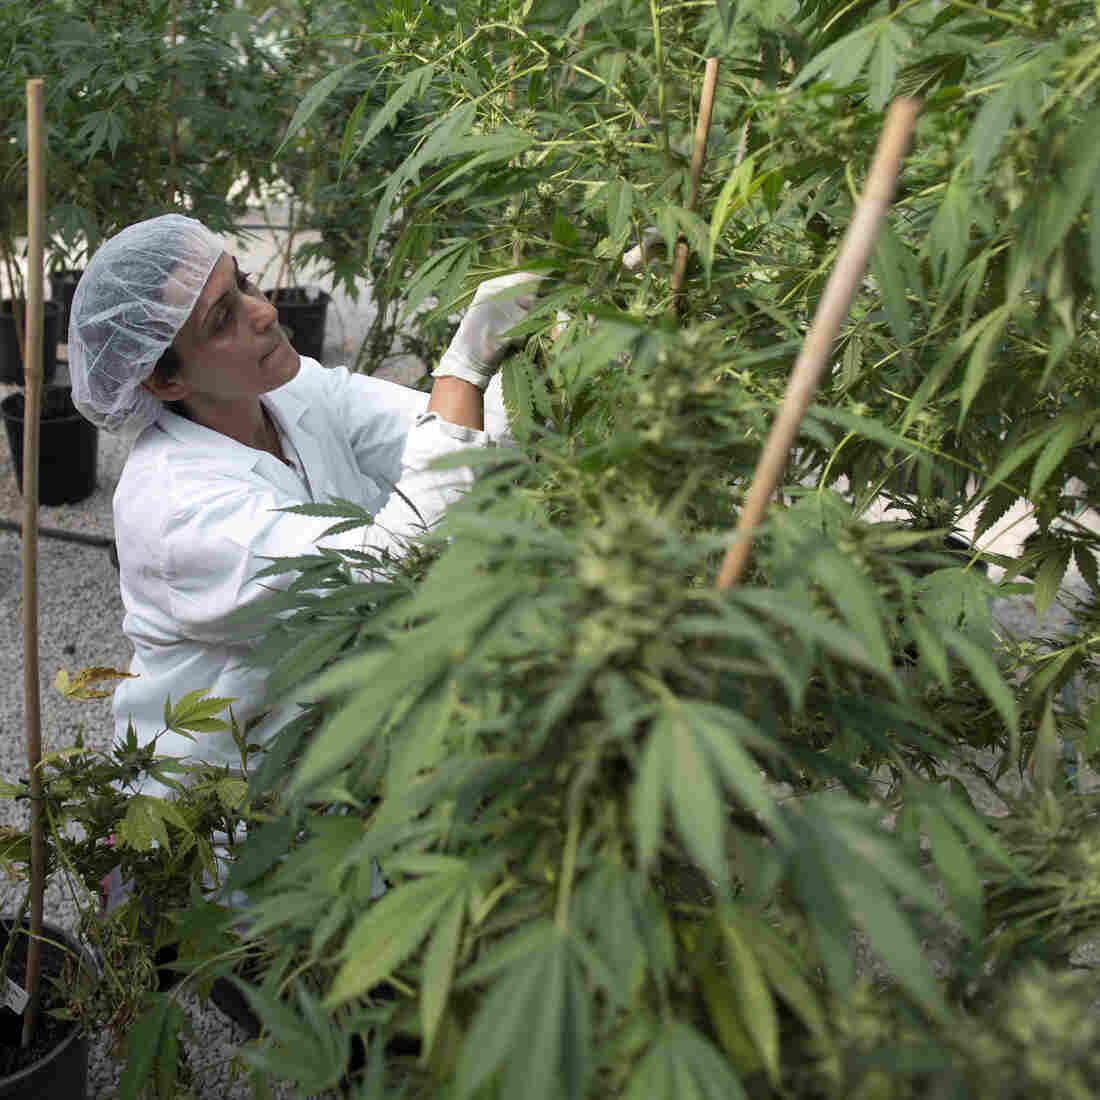 A new free market for medical marijuana in Canada will replace small growers with large-scale indoor farms.